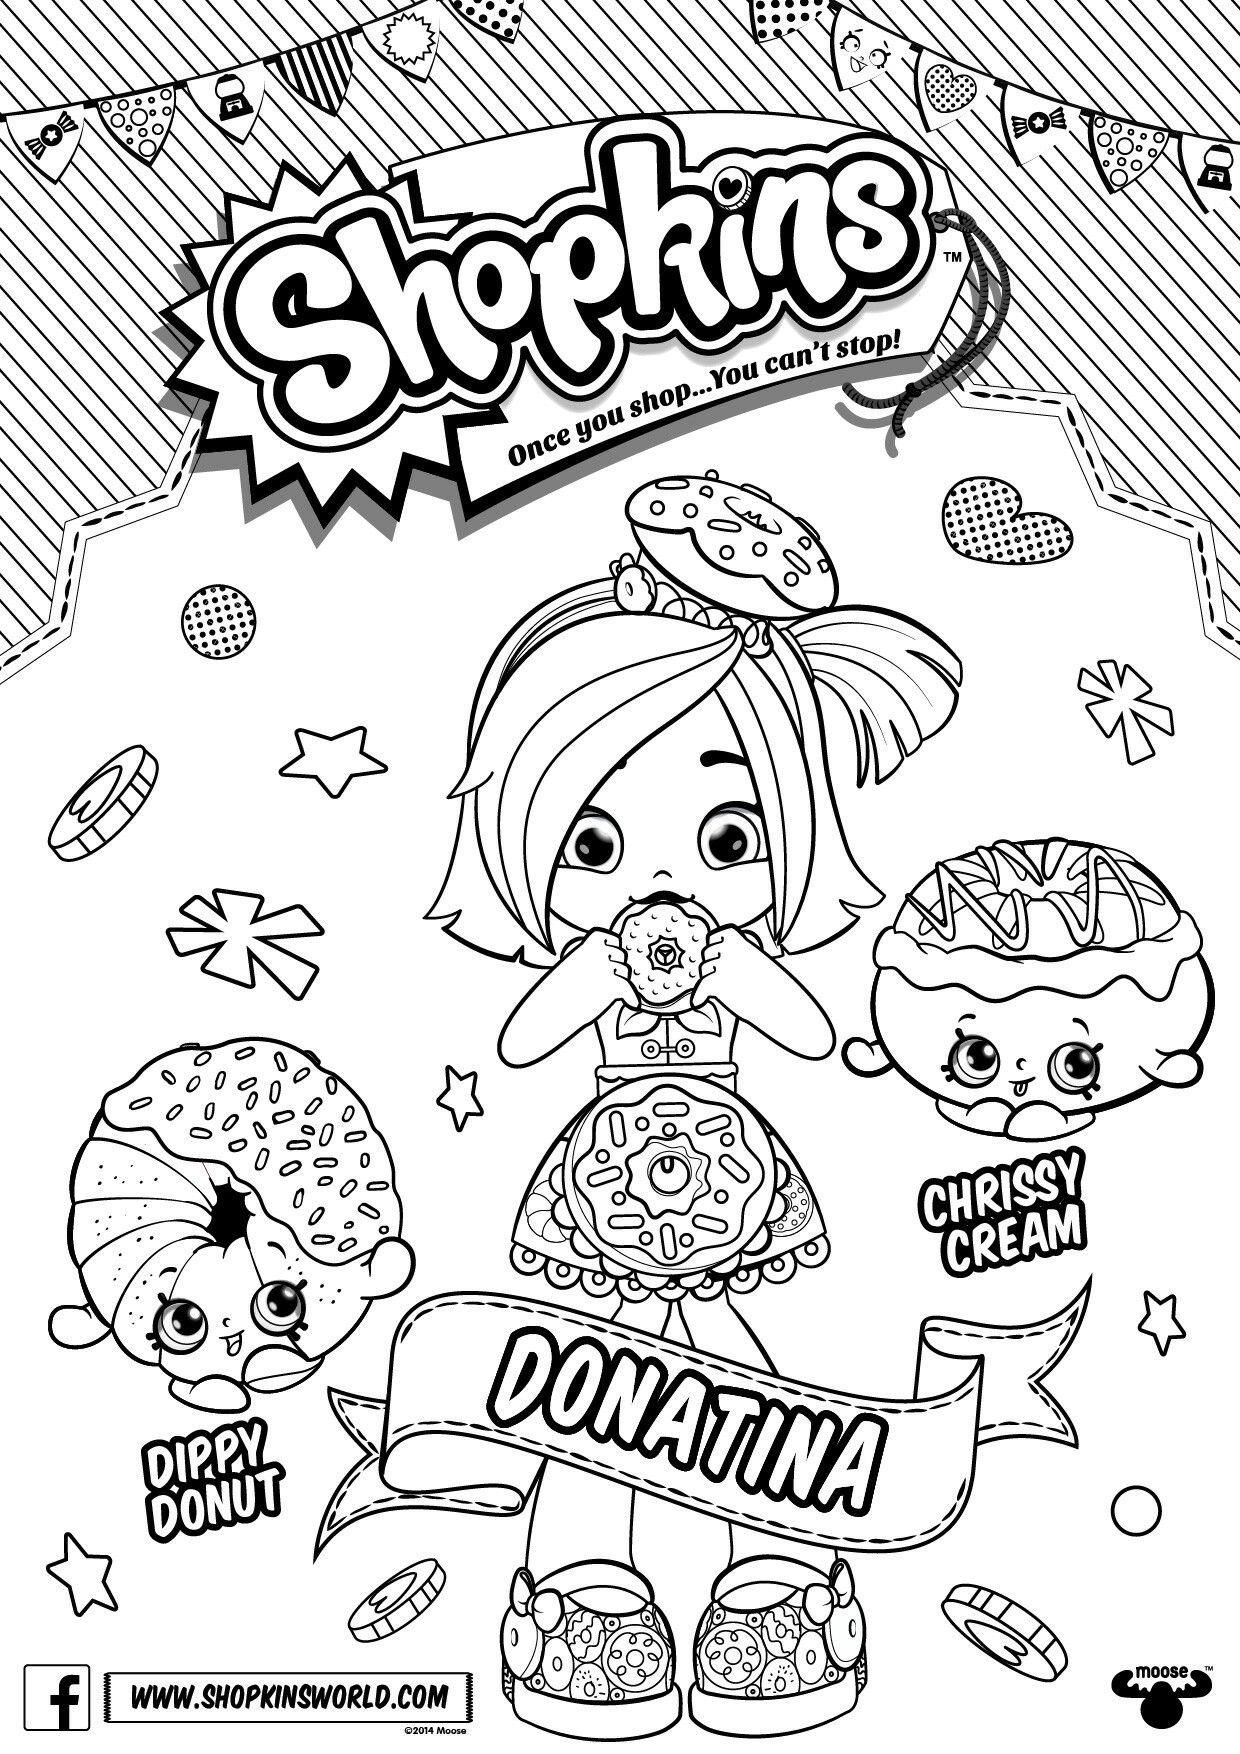 Pin by denice roerholt on coloring pages pinterest shopkins